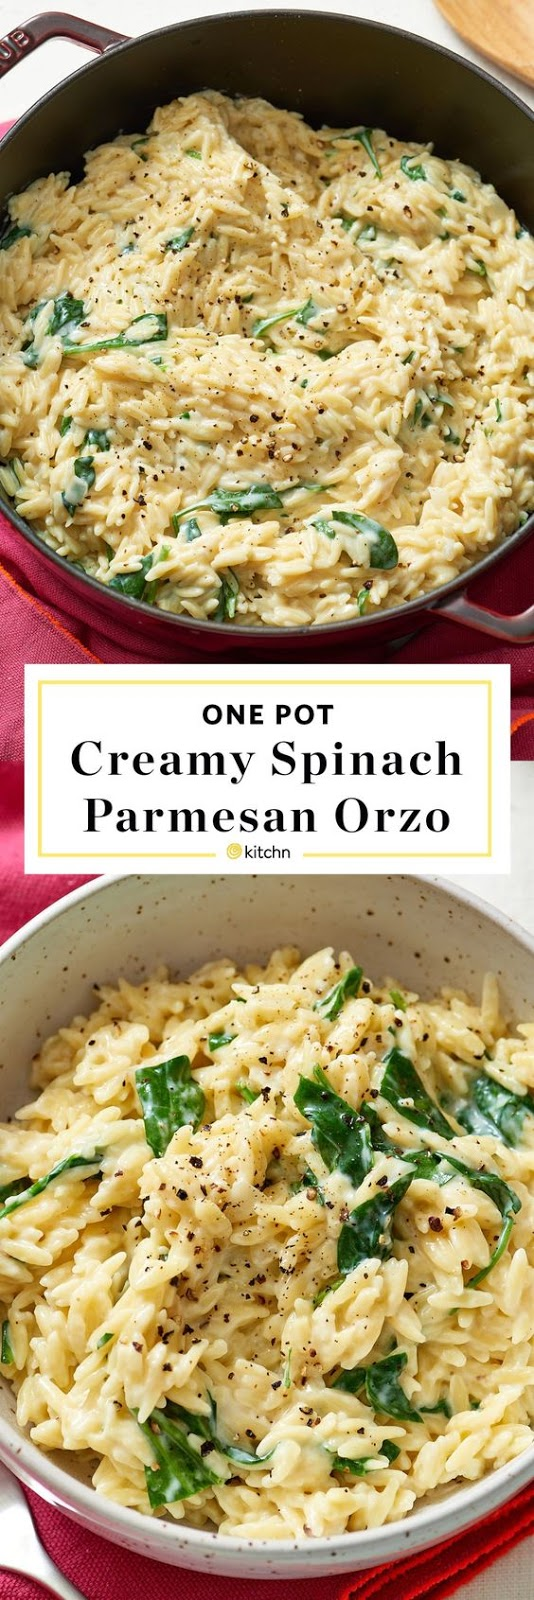 Creamy Spinach Parmesan Orzo